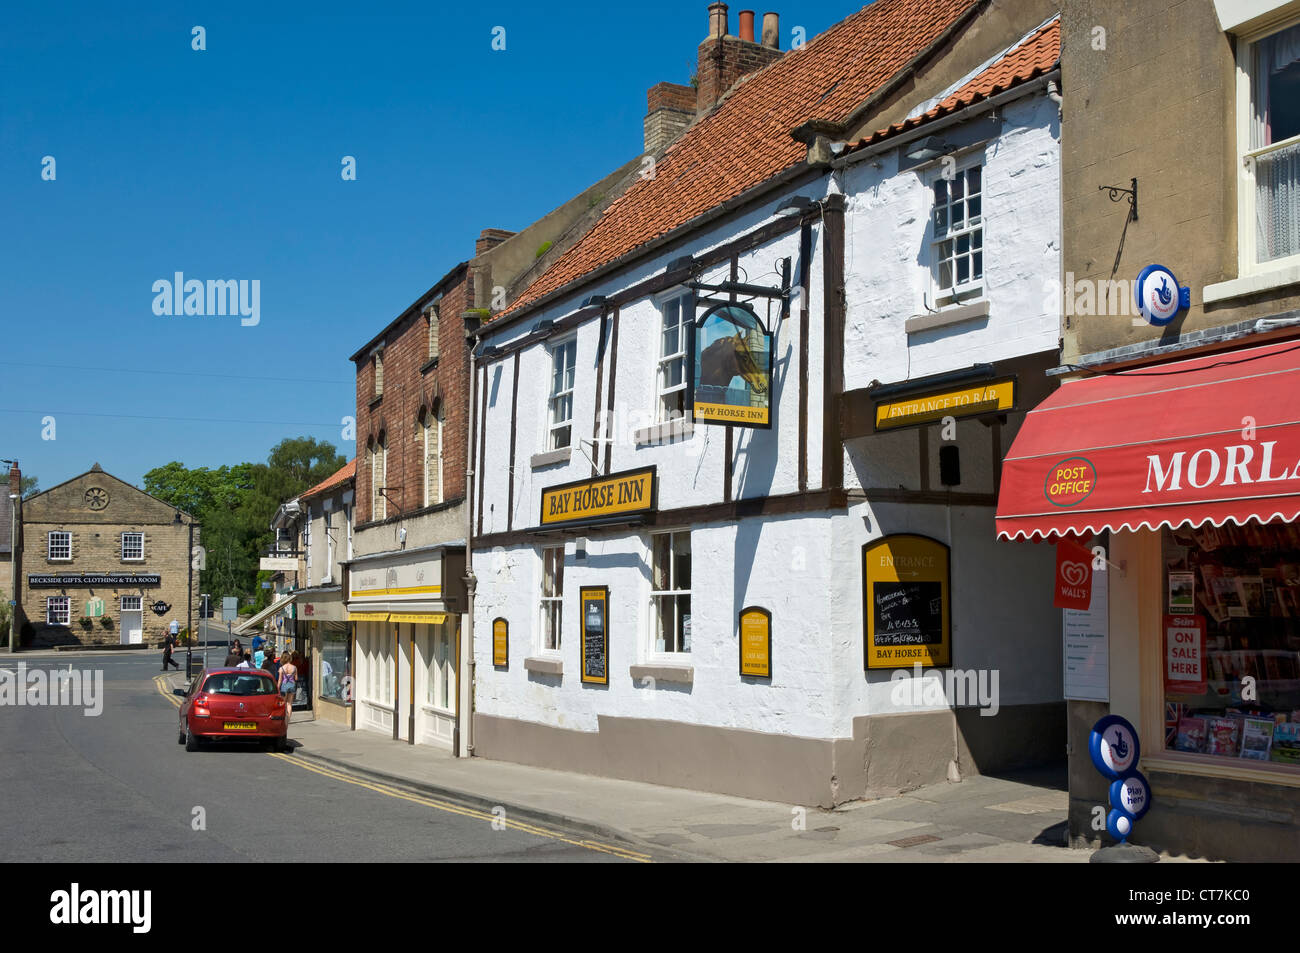 Bay Horse Inn Market Place Pickering North Yorkshire England UK United Kingdom GB Great Britain - Stock Image